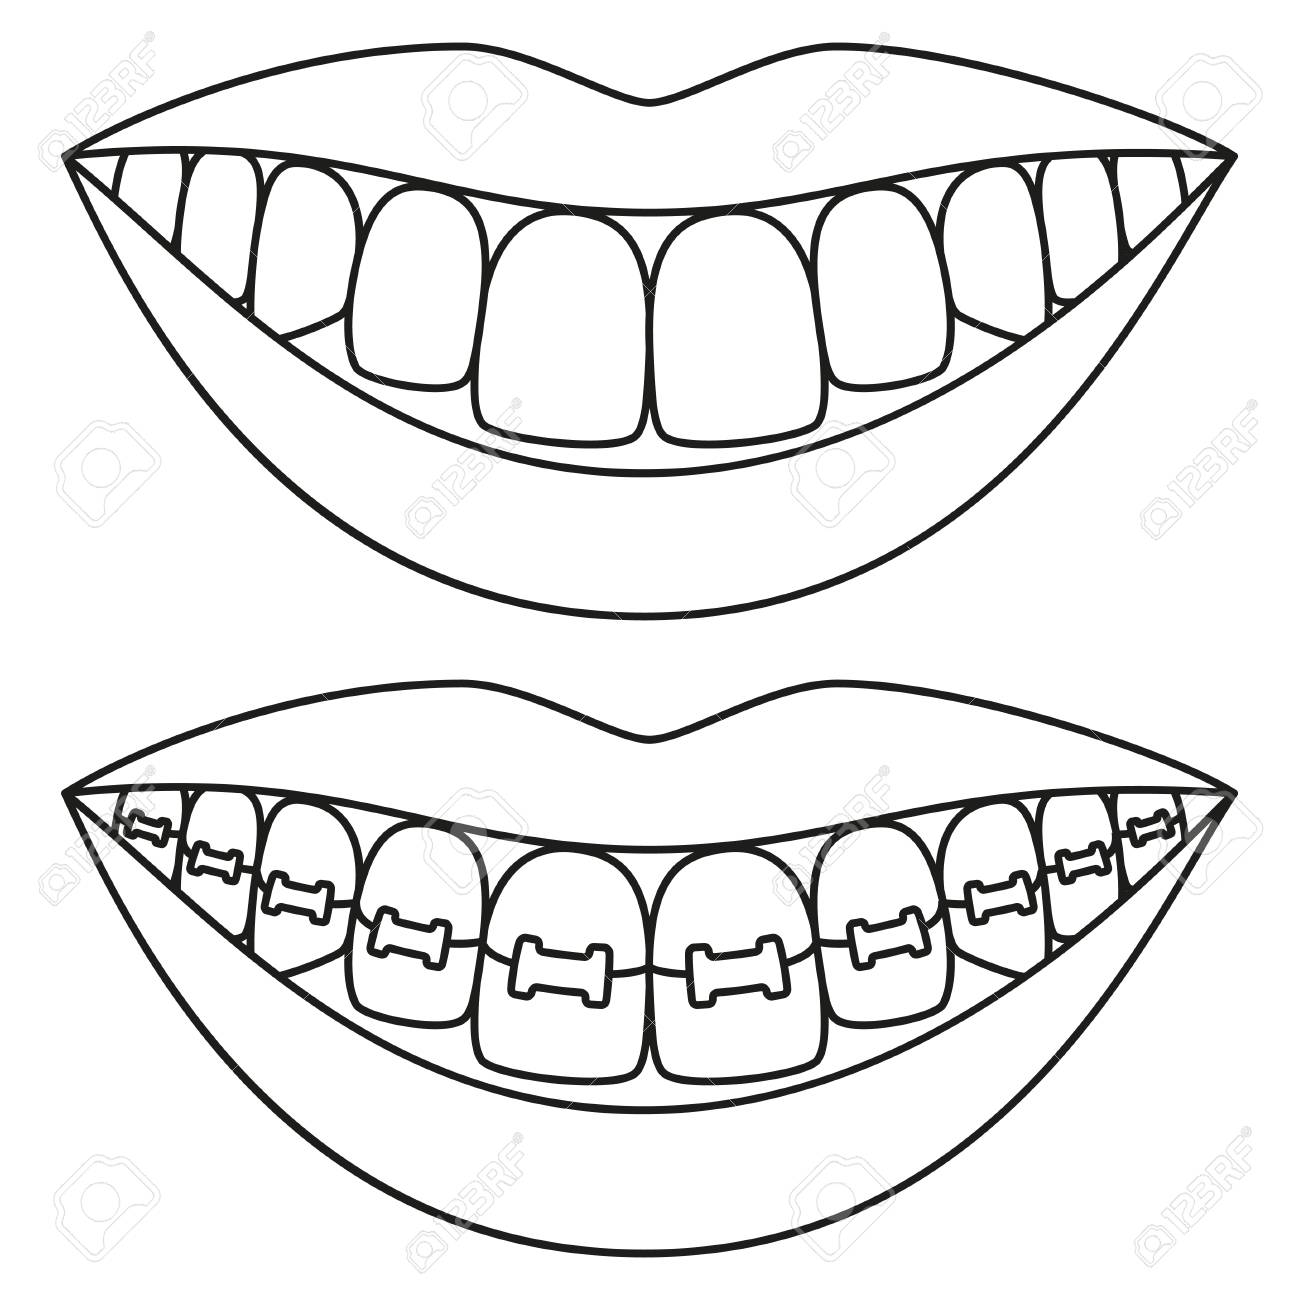 Line art black and white teeth aligning concept. Before and after..